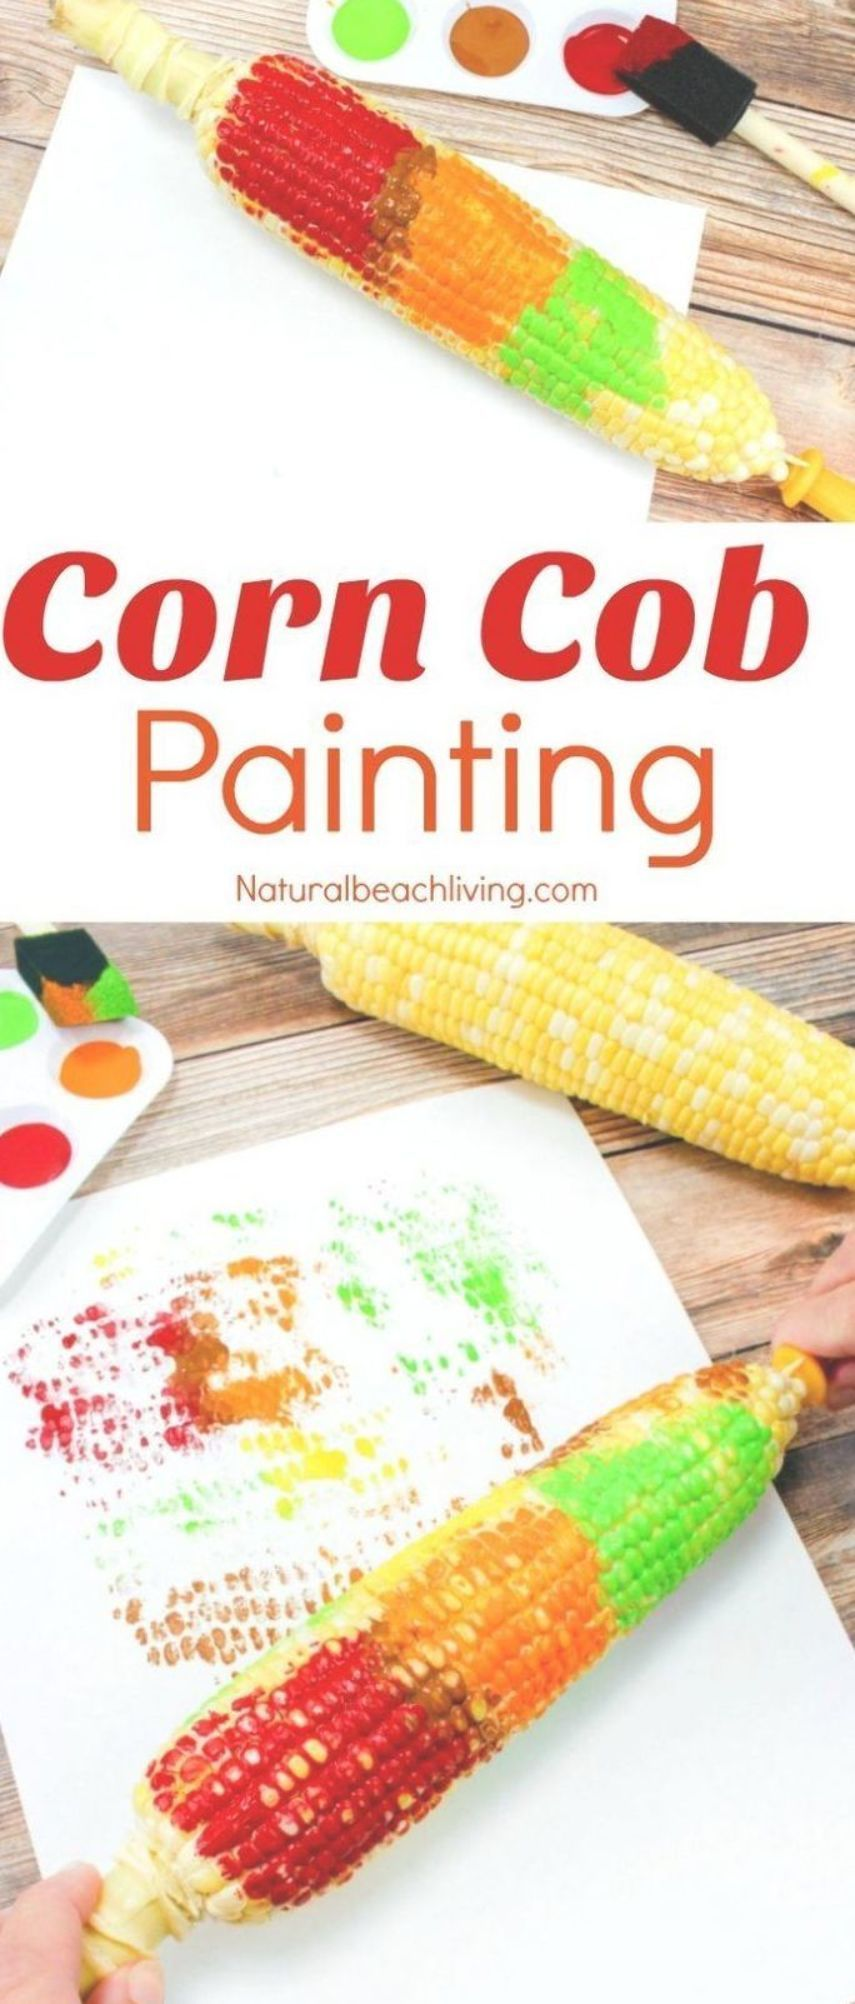 Fun Corn Cob Craft Painting for Kids, Thanksgiving Crafts, Thanksgiving Arts Crafts, Corn Cob Painting, Easy Fall Crafts for preschoolers, Farm Preschool Theme activities, Easy Thanksgiving Crafts Kids Love #Thanksgiving #Crafts #Fallcrafts #fallcraftsfortoddlers Fun Corn Cob Craft Painting for Kids, Thanksgiving Crafts, Thanksgiving Arts Crafts, Corn Cob Painting, Easy Fall Crafts for preschoolers, Farm Preschool Theme activities, Easy Thanksgiving Crafts Kids Love #Thanksgiving #Crafts #Fallcr #thanksgivingcraftsfortoddlers